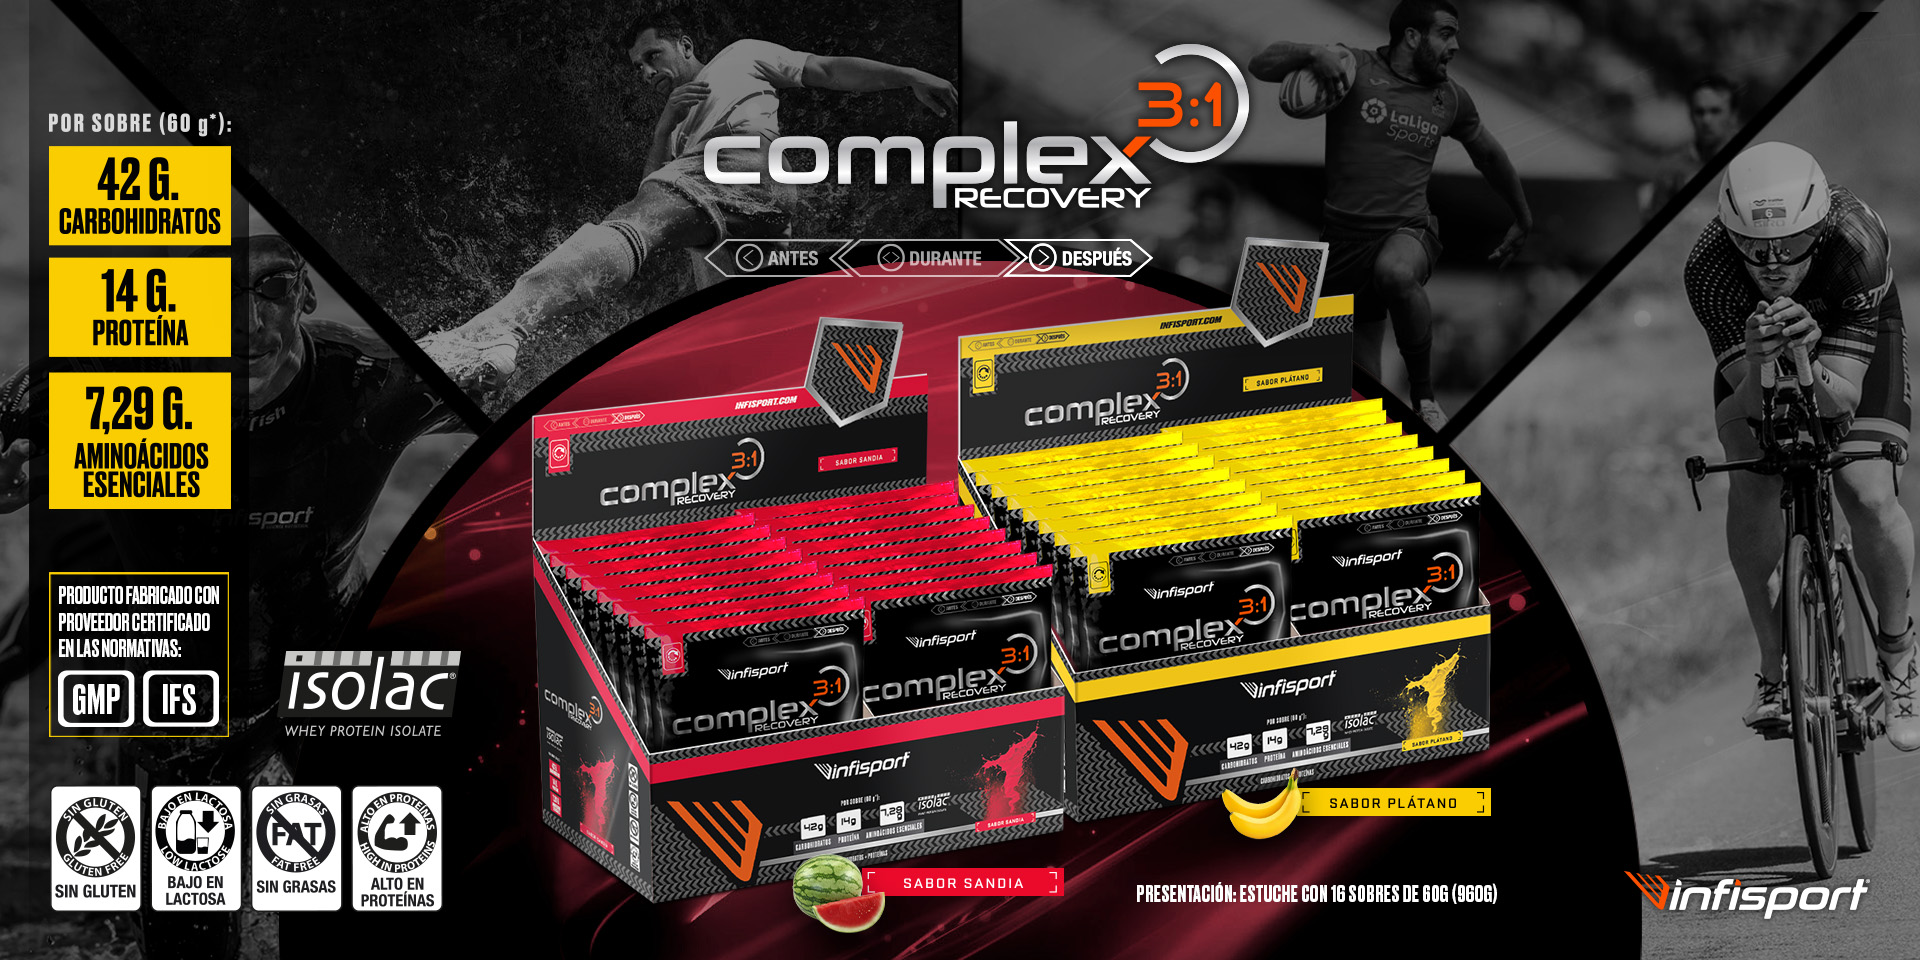 productos-carbohidratos-proteinas-complex-3-1-recovery-polvo-60-g